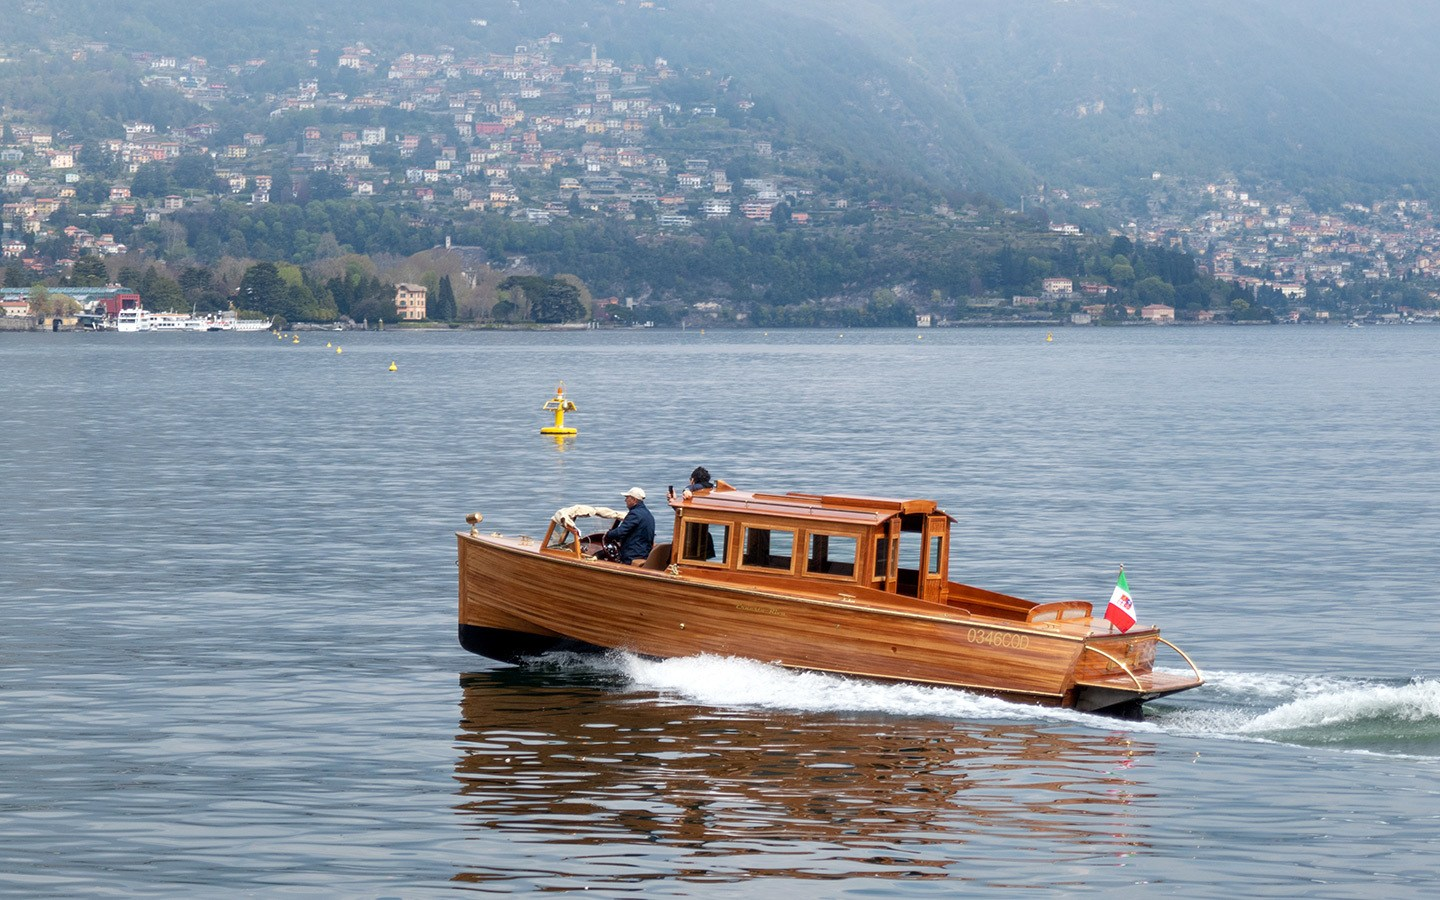 A classic wooden Riva speedboat on Lake Como